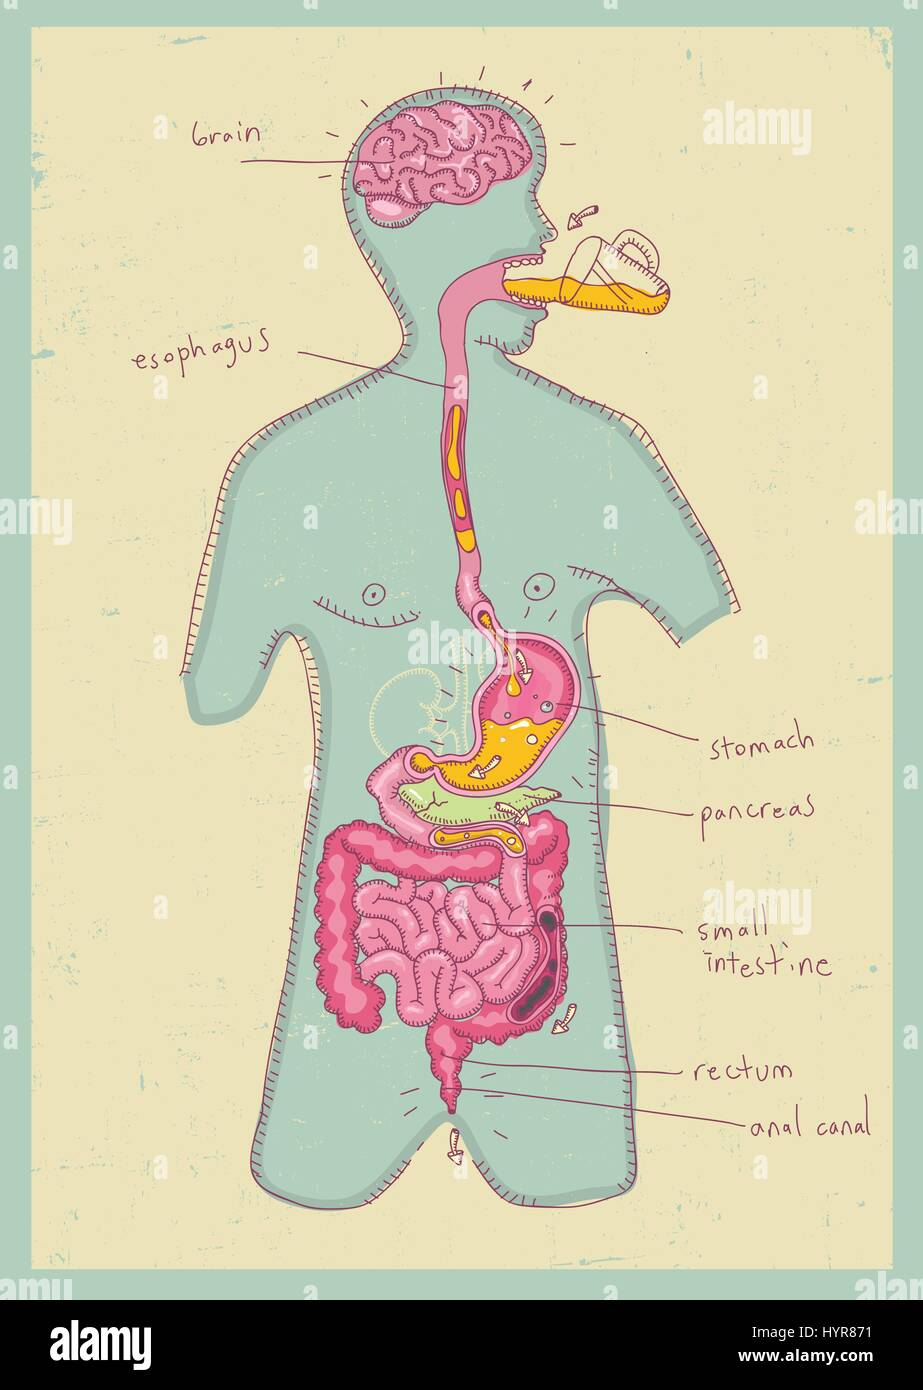 Vector Illustration Of Human Digestive System For Kids Manual Guide